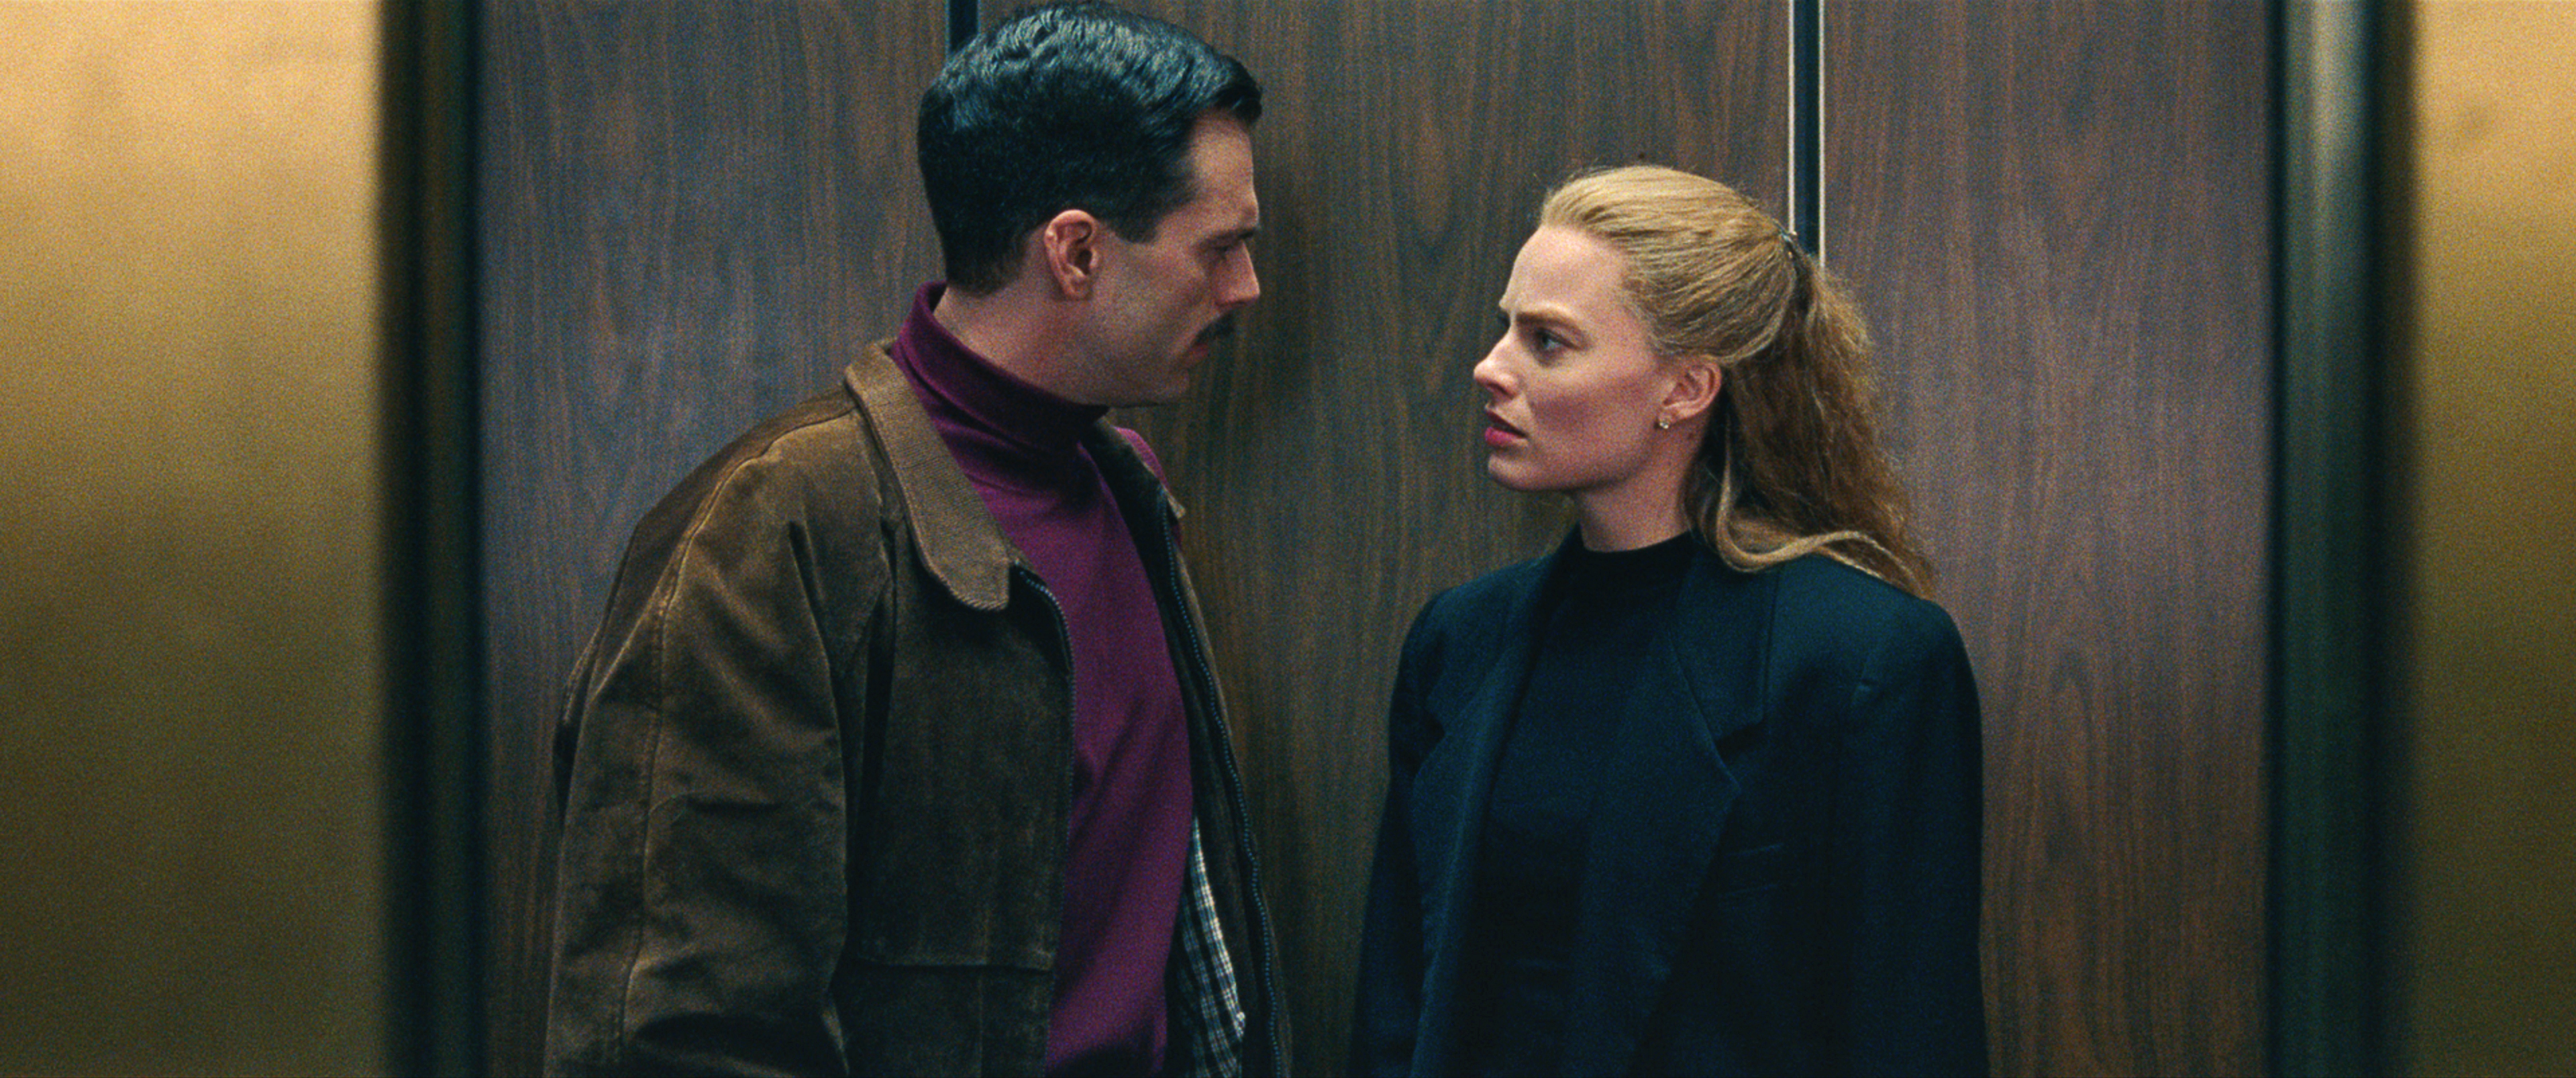 8-Tonya Harding(Margot Robbie) and Jeff Gillooly (Sebastian Stan) in an elevator in I, TONYA, courte